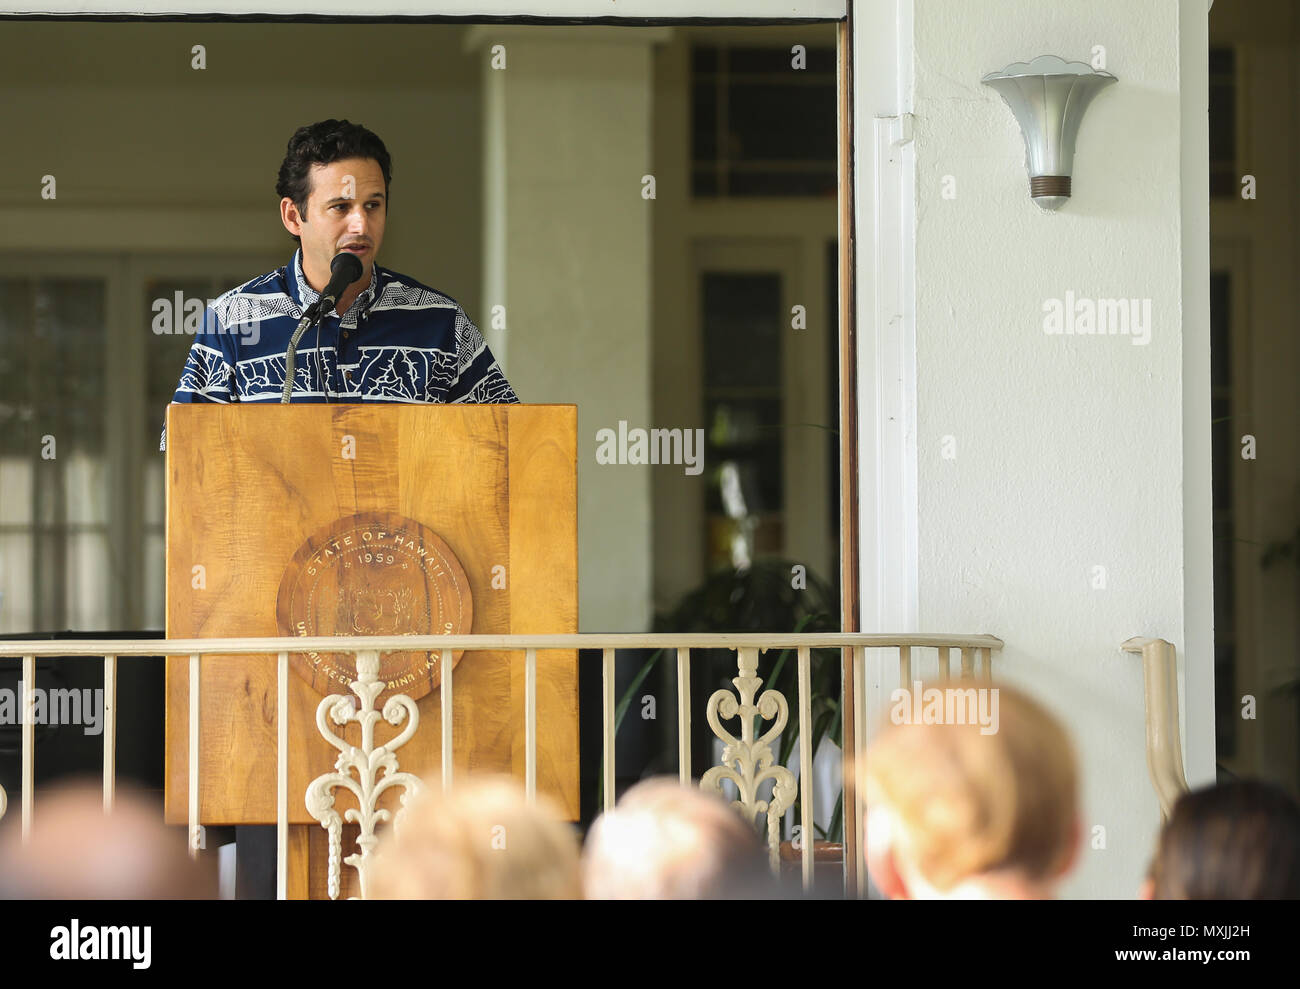 U.S. Sen. Brian Schatz speaks during Dr. Ernest James Harris, Jr.'s Congressional Gold Medal ceremony in Honolulu Nov. 12, 2016. Harris was awarded his Congressional Gold Medal for his service as a Montford Point Marine. (U.S. Marine Corps photo by Cpl. Wesley Timm) - Stock Image